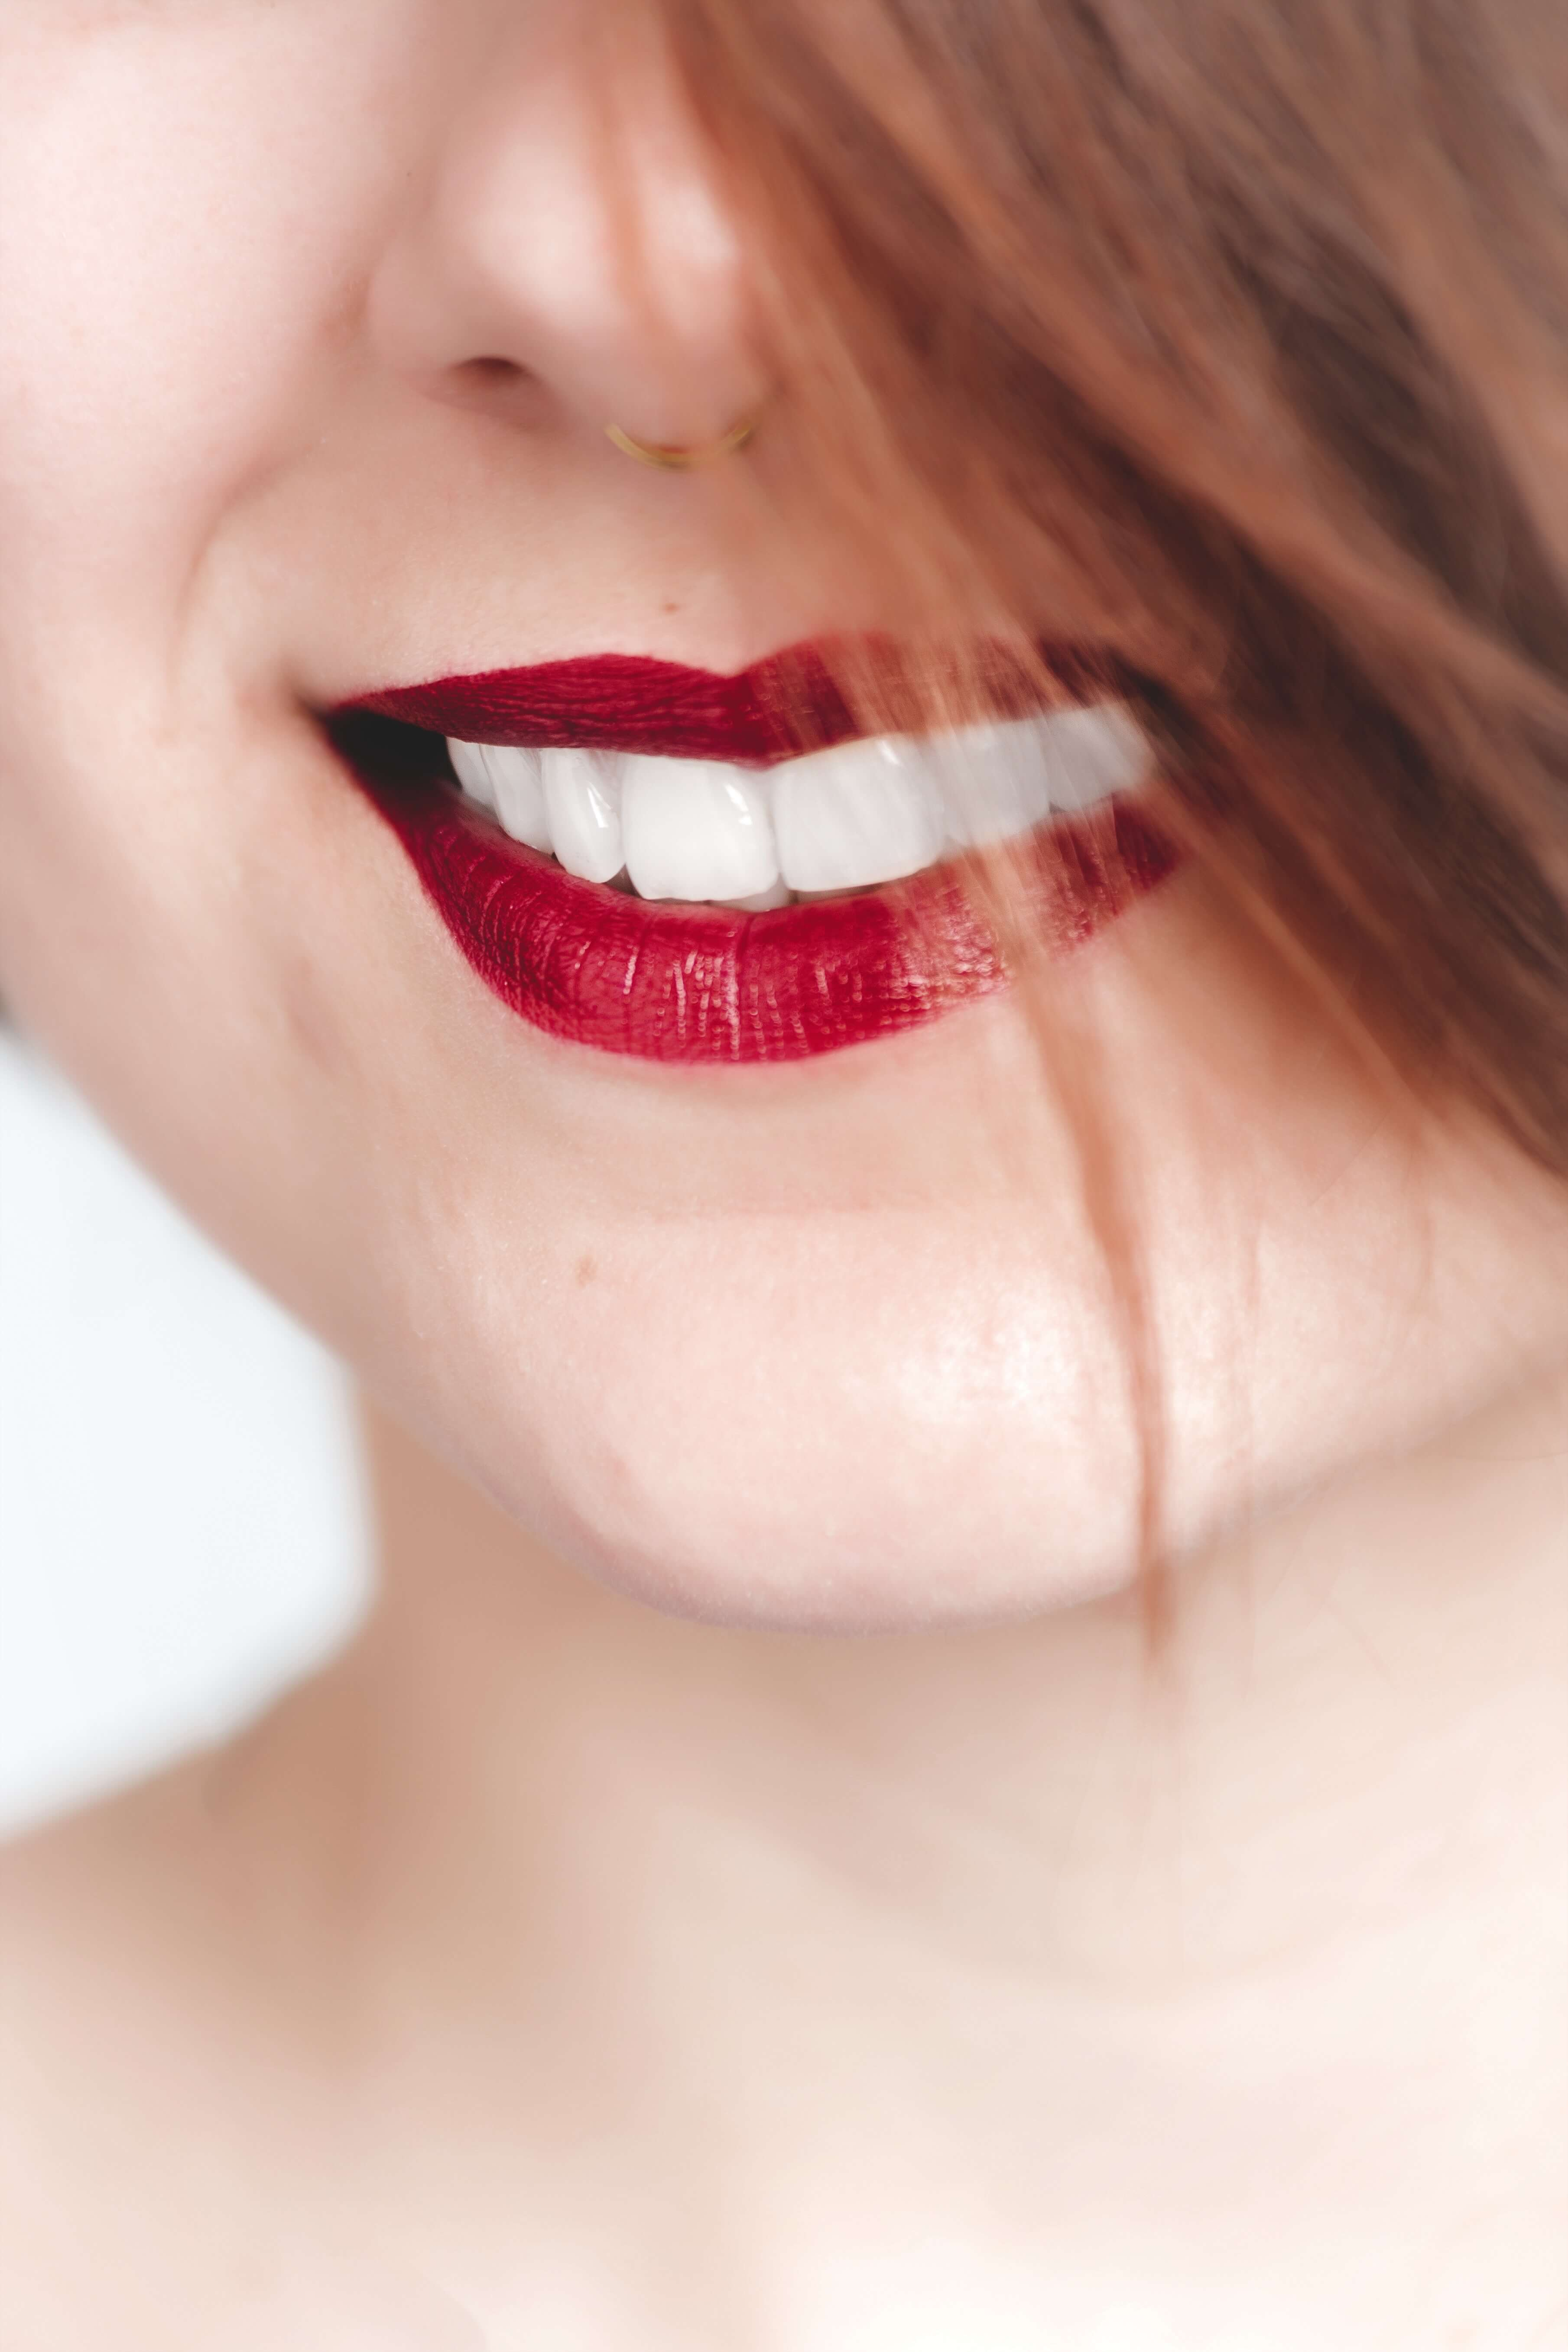 How To Use Snow White Teeth Whitening Kit